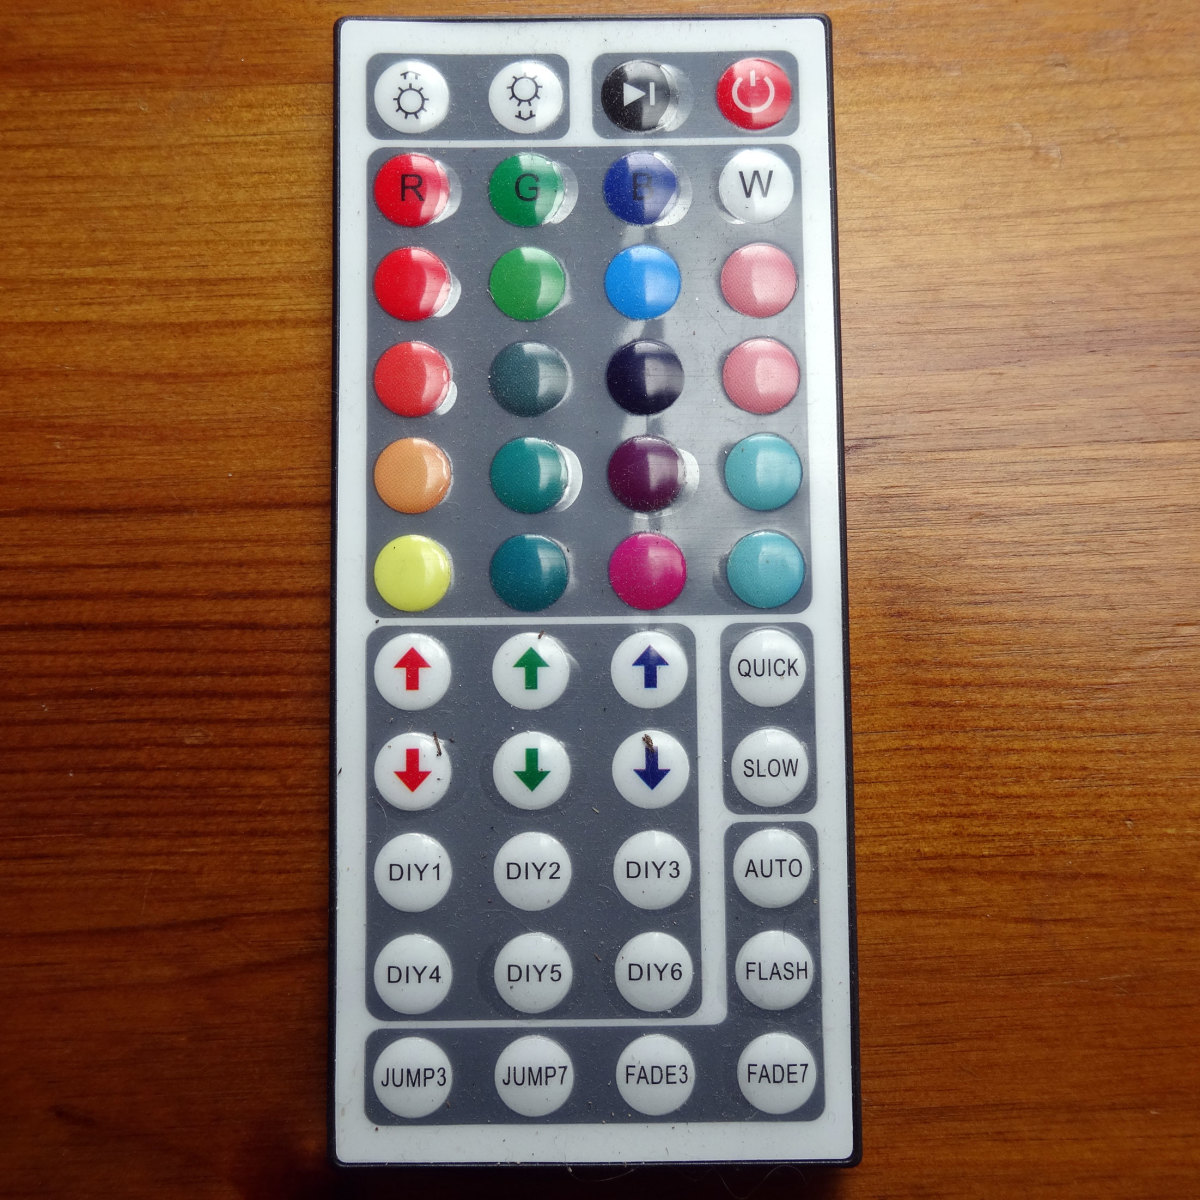 Remote Control for LED lights.